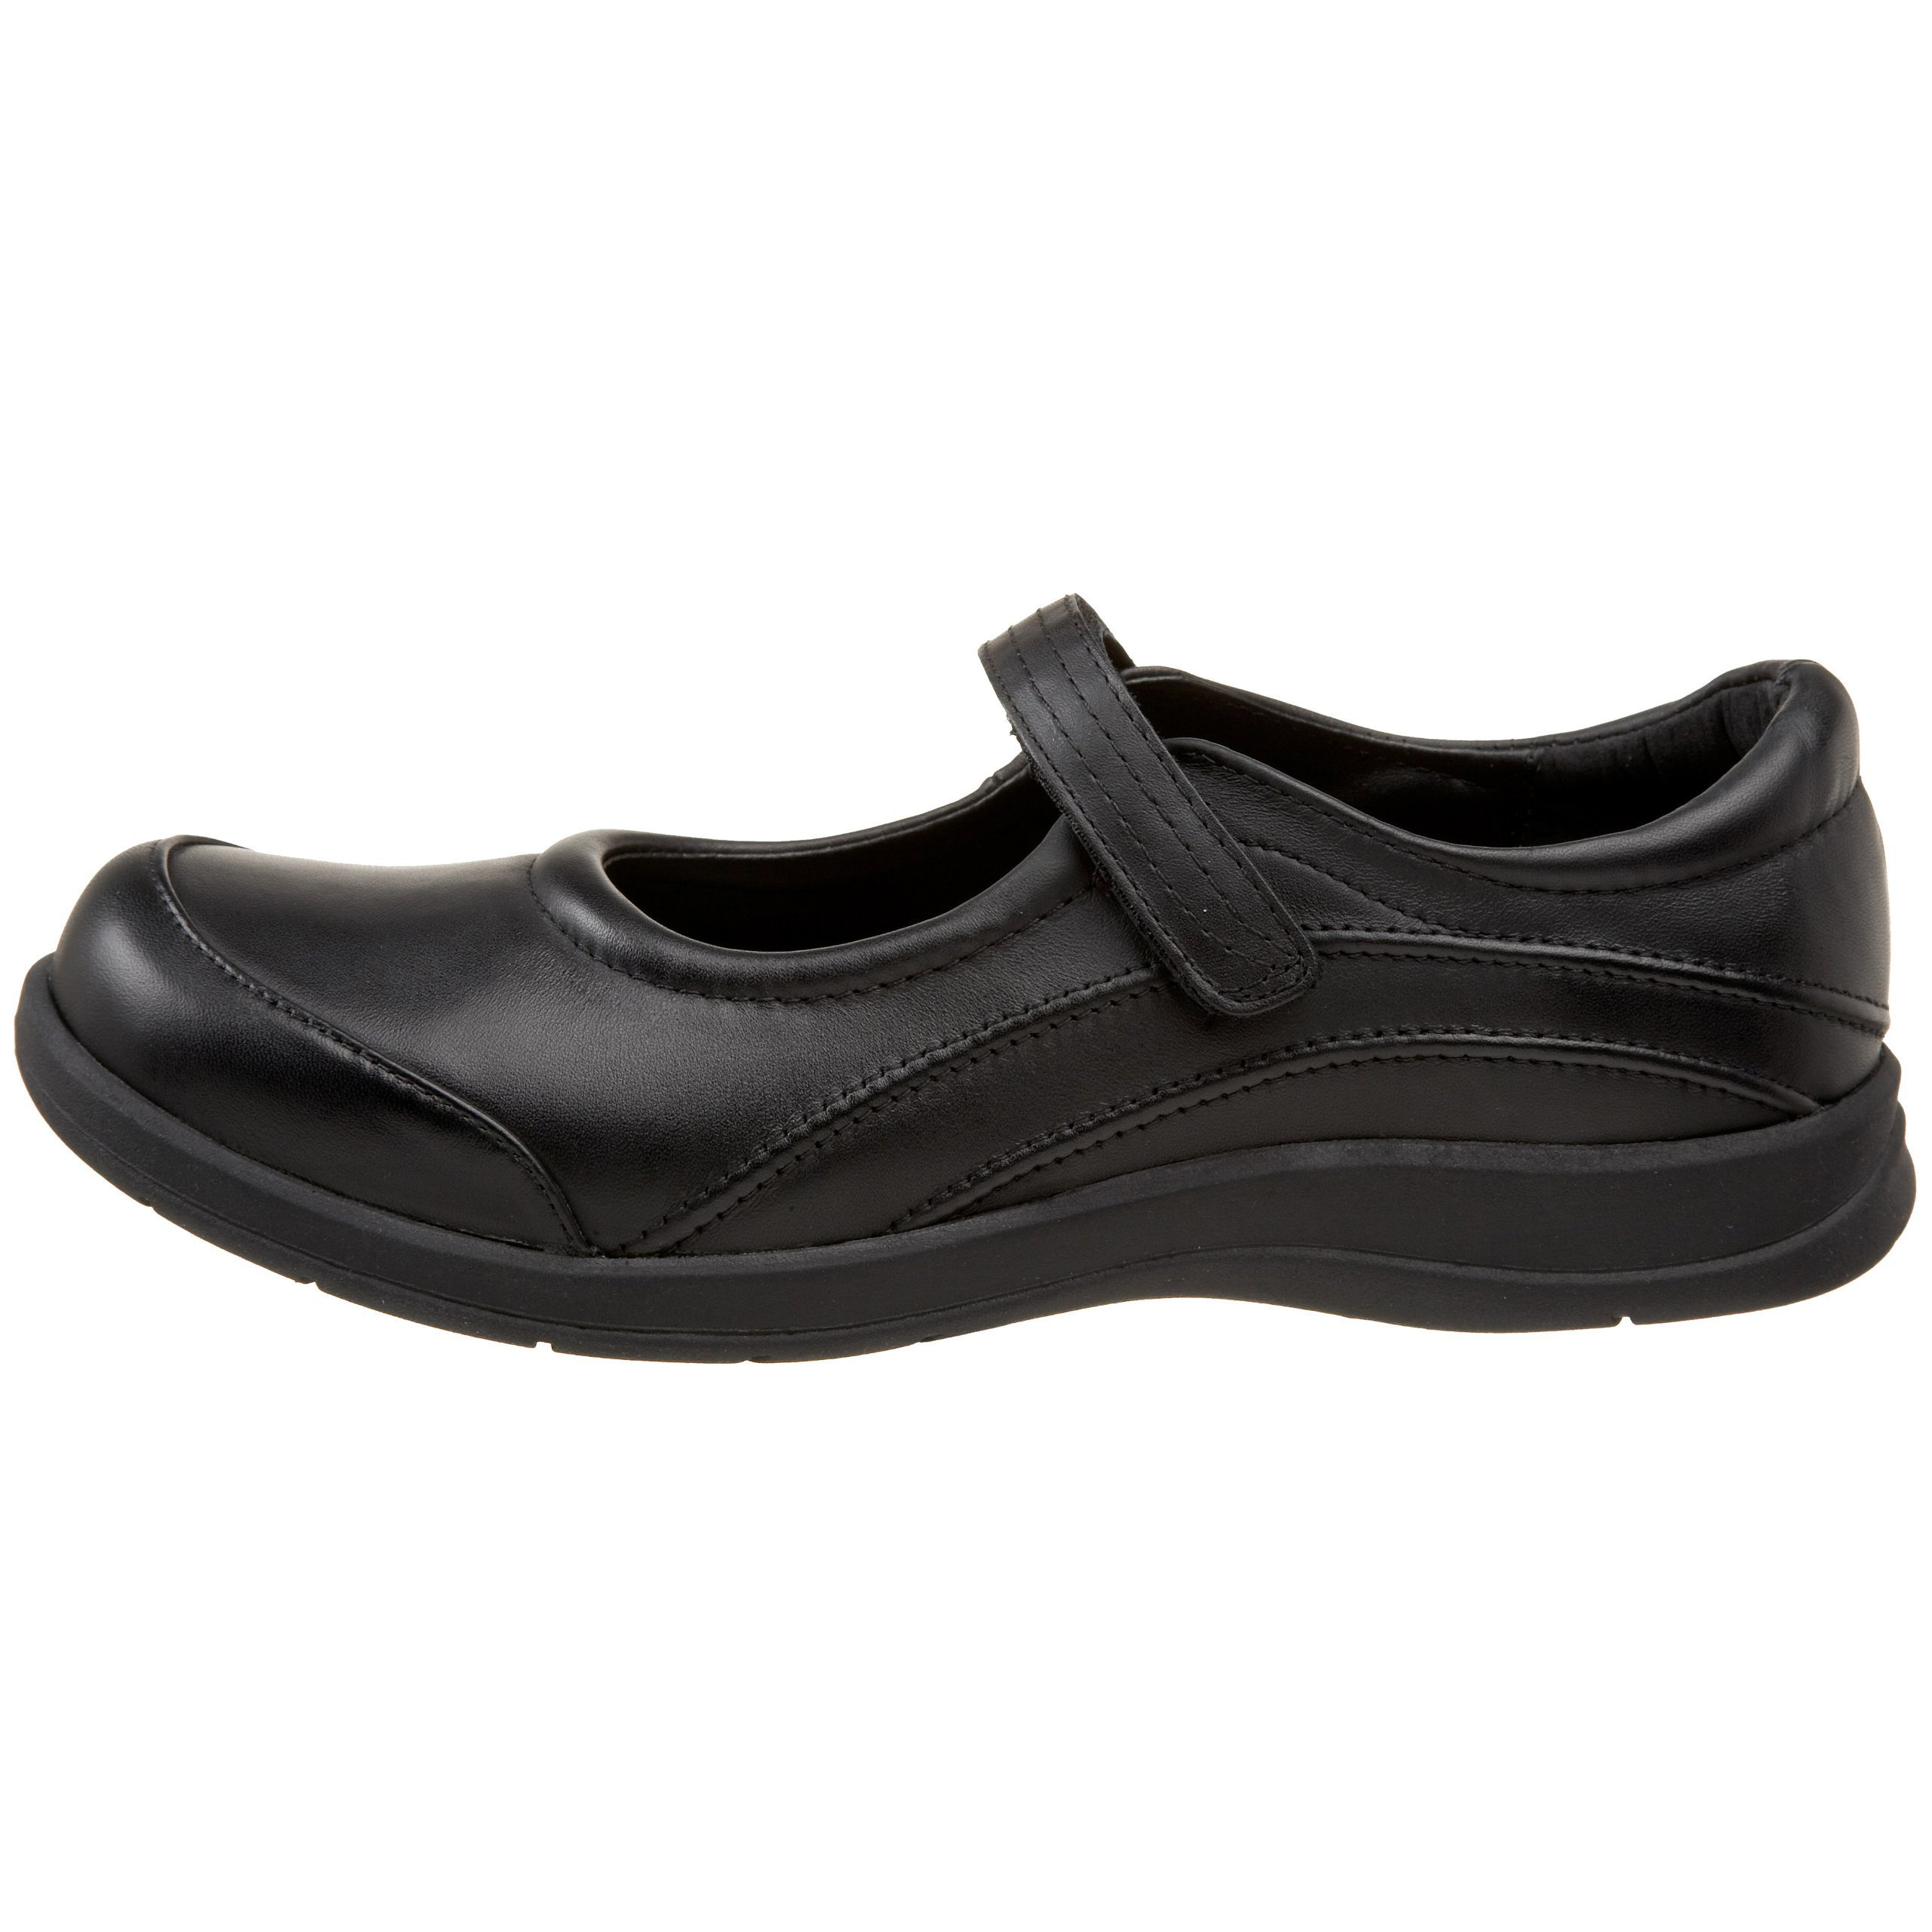 Stride Rite Little Kid/Big Kid Molly Mary Jane,Black Leather,10 N US Toddler by Stride Rite (Image #4)